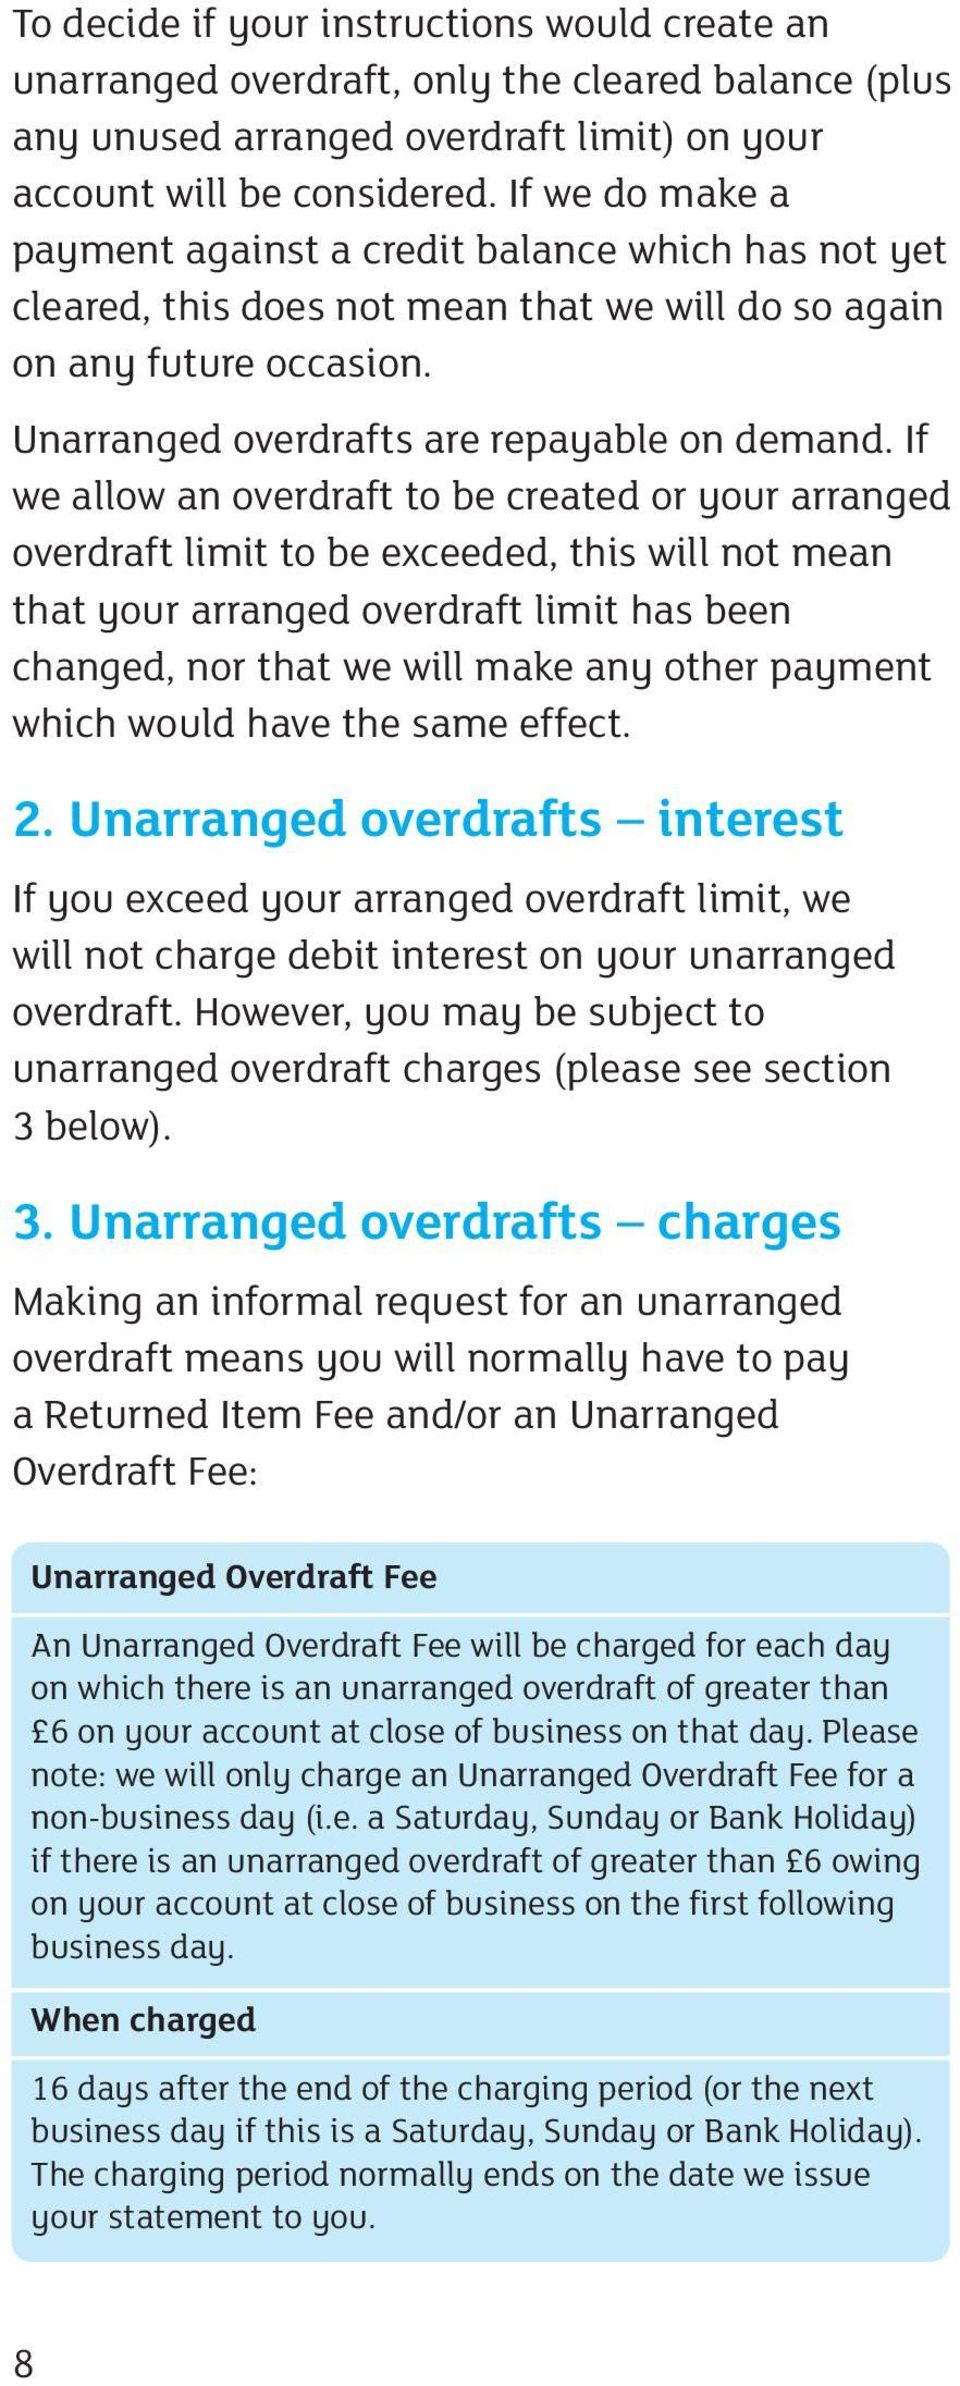 If we allow an overdraft to be created or your arranged overdraft limit to be exceeded, this will not mean that your arranged overdraft limit has been changed, nor that we will make any other payment